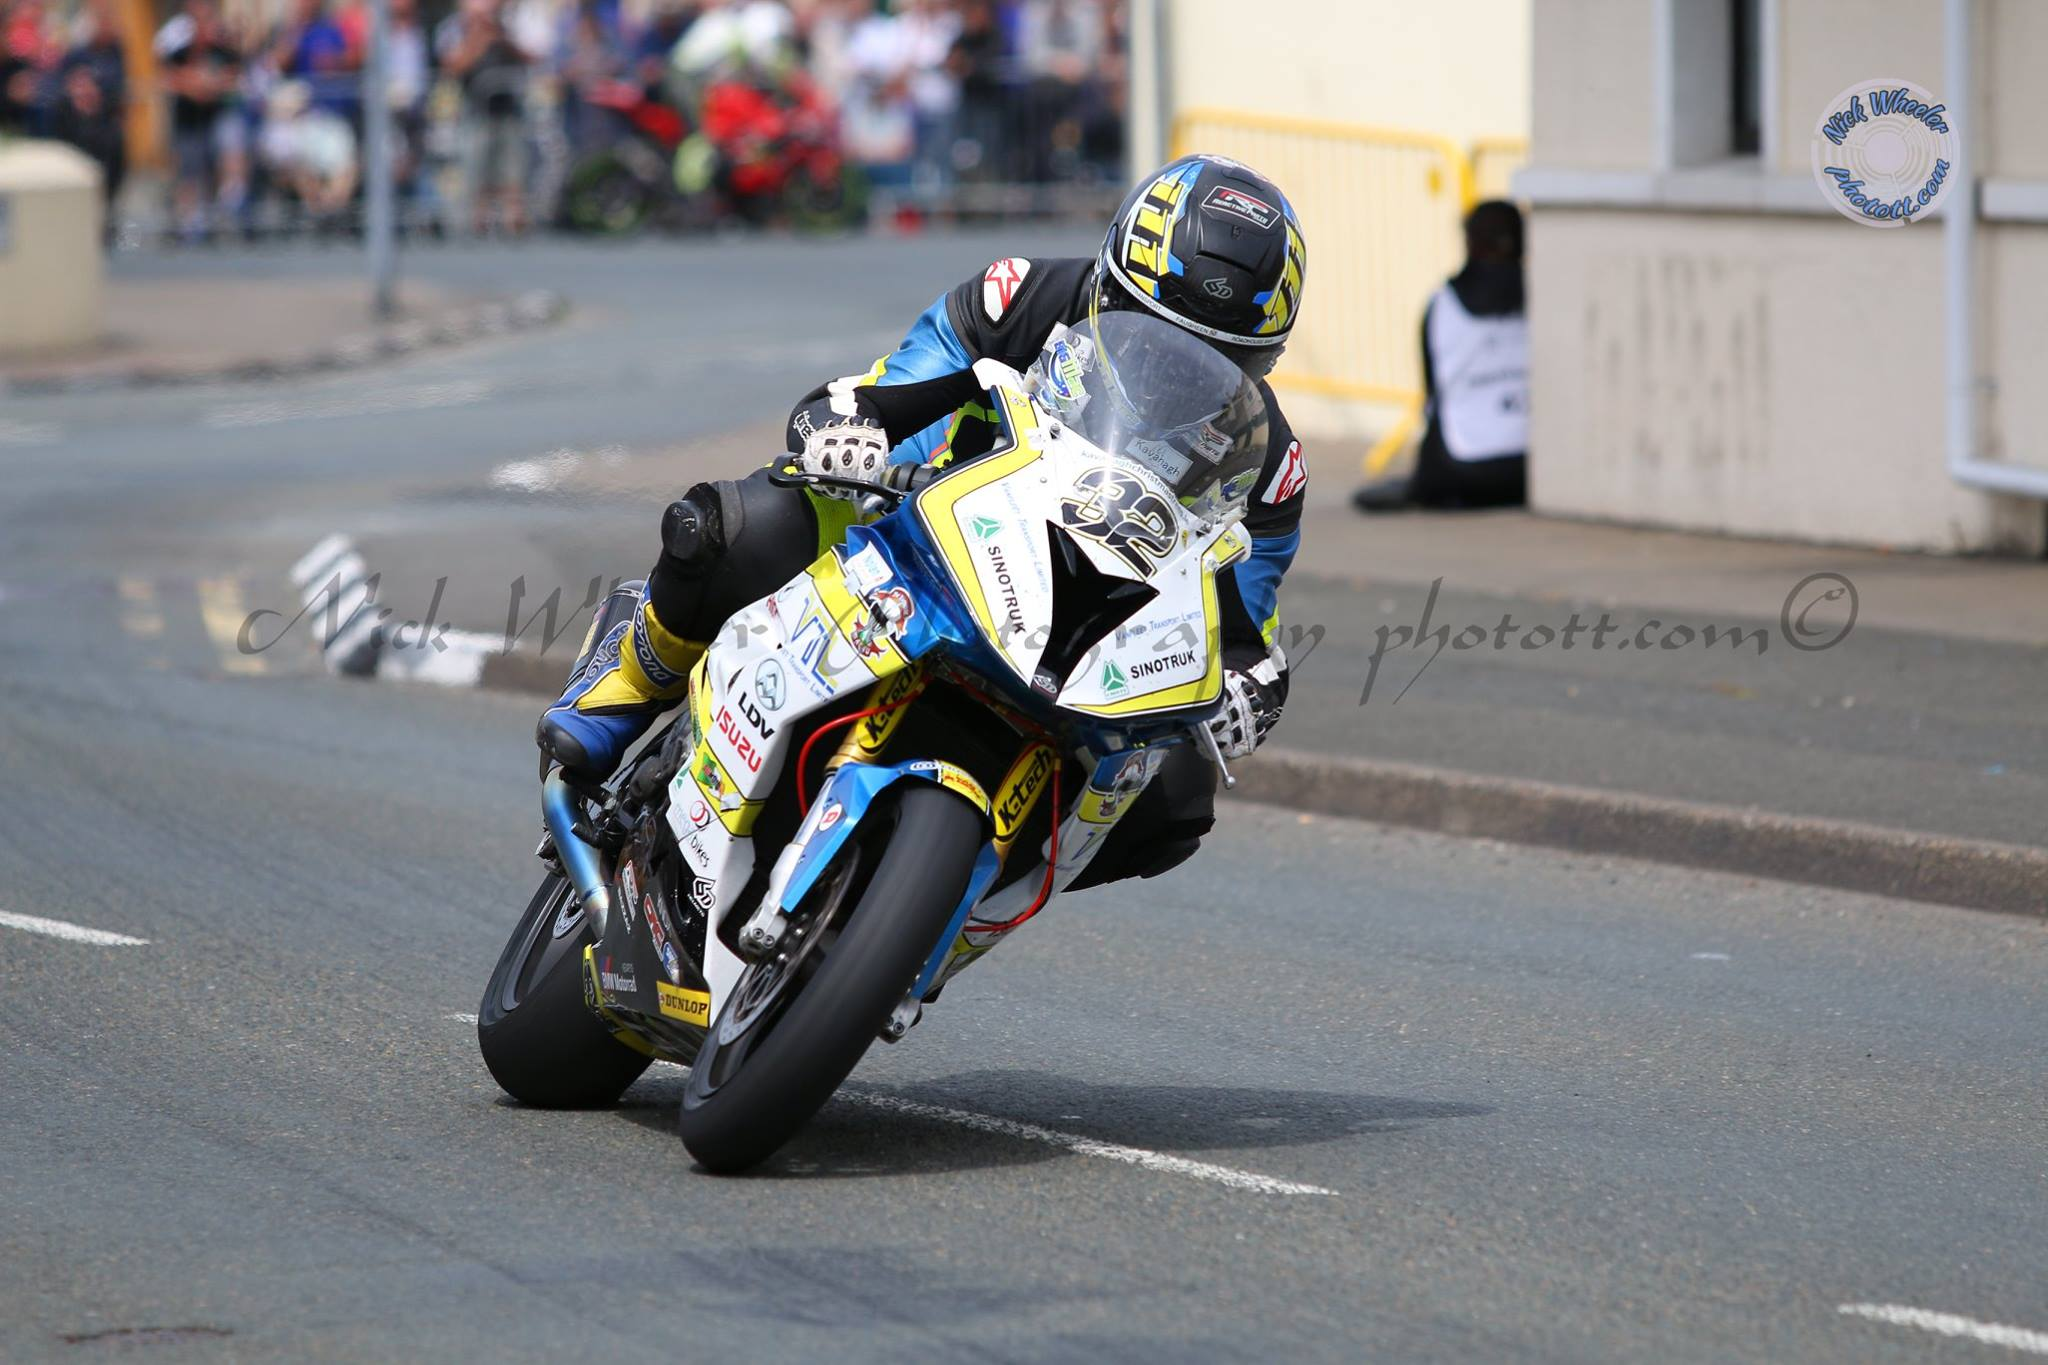 McCormack Teams Up With A&C Suzuki For First Classic TT Tilt